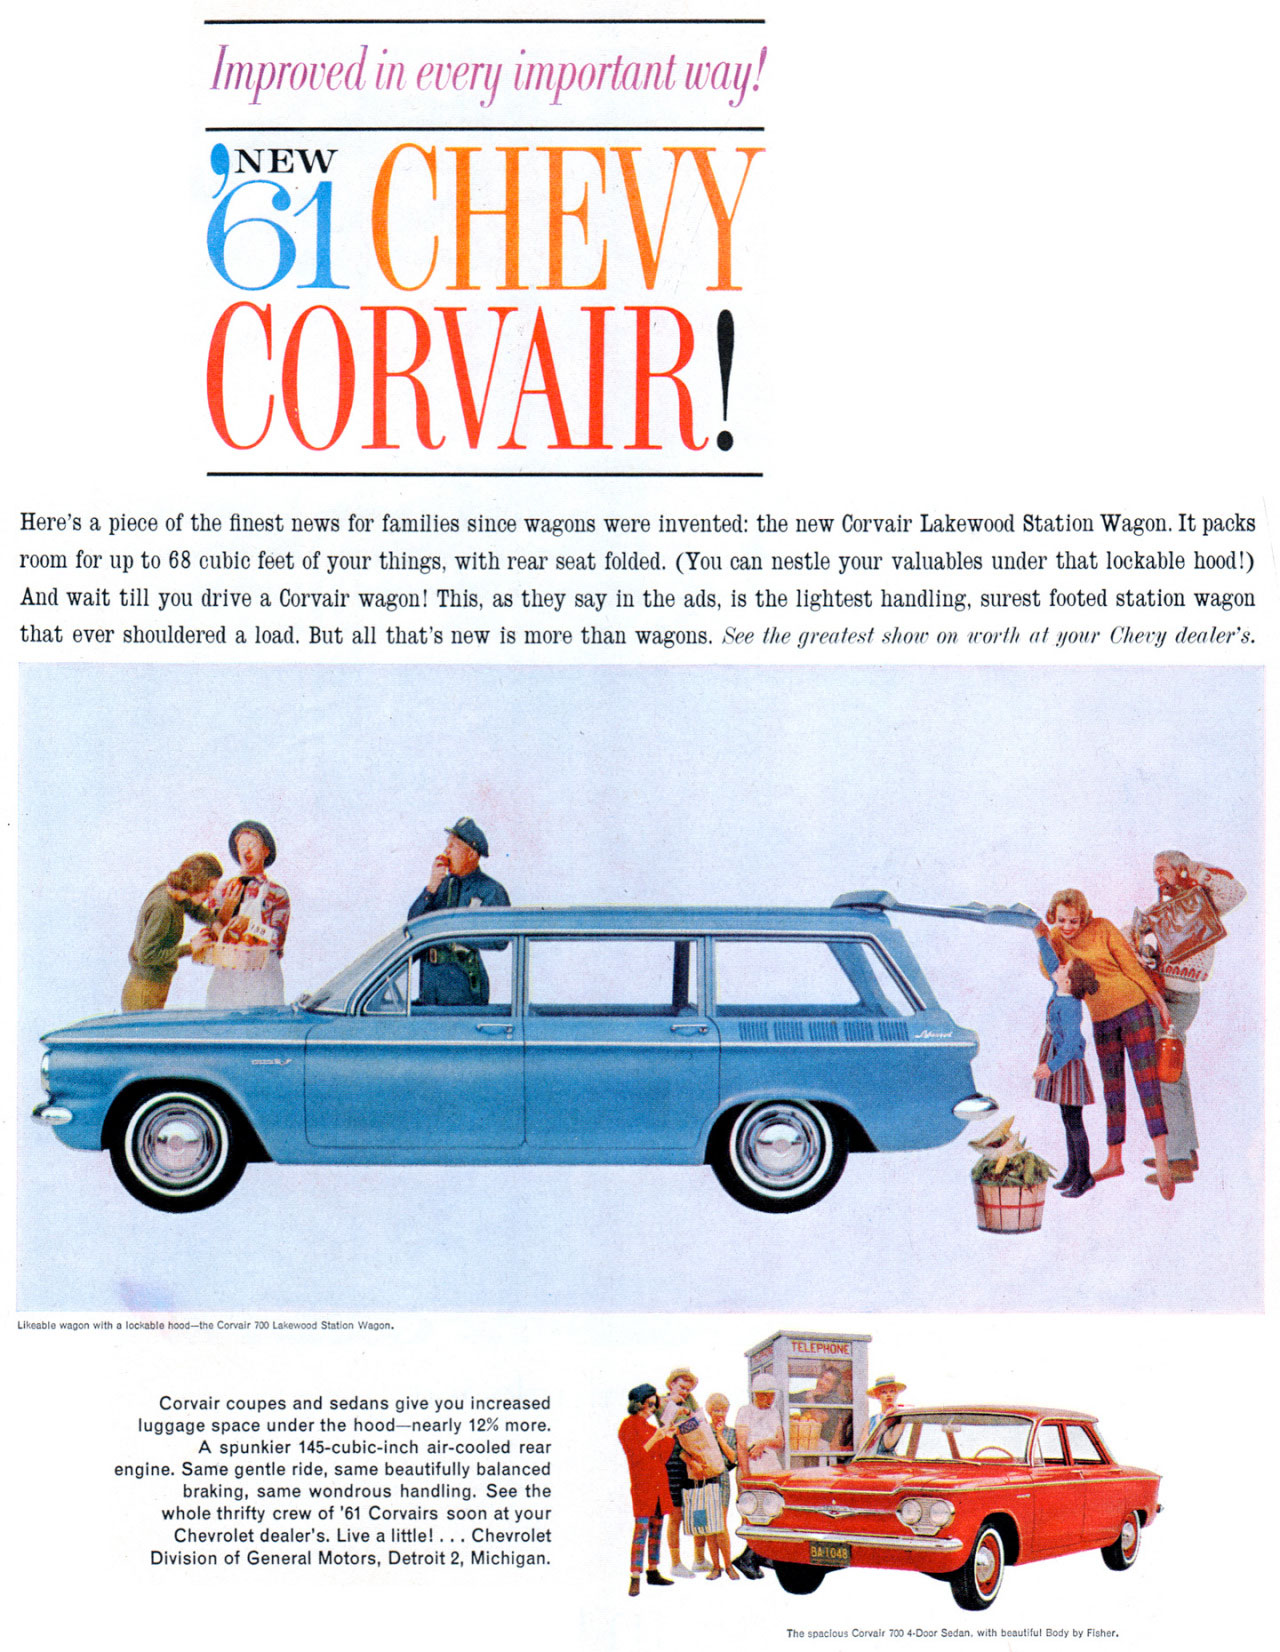 Improved in every important way! The new 1961 Chevrolet Corvair!   Here's a piece of the finest news for families since wagons were invented: the new Corvair Lakewood Station Wagon. It packs room for up to 68 cubic feet of your things, with rear seat folded. (You can nestle your valuables under that lockable hood!) And wait till you drive a Corvair wagon! This, as they say in the ads, is the lightest handling, surest footed station wagon that ever shouldered a load. But all that's new is more than wagons. See the greatest show on worth al goat. (lieu dealer's.   Likeable wagon with a lockable hood—the Corvair 700 Lakewood Station Wagon.  Corvair coupes and sedans give you increased luggage space under the hood—nearly 12% more. A spunkier 145-cubic-inch air-cooled rear engine. Some gentle ride, same beautifully balanced braking, same wondrous handling. See the whole thrifty crew of '61 Corvairs soon at your Chevrolet dealer's. Live a little! ... Chevrolet Division of General Motors, Detroit 2, Michigan.  The toaclobt Corvair 7014•Door Soda, with Eoiy b